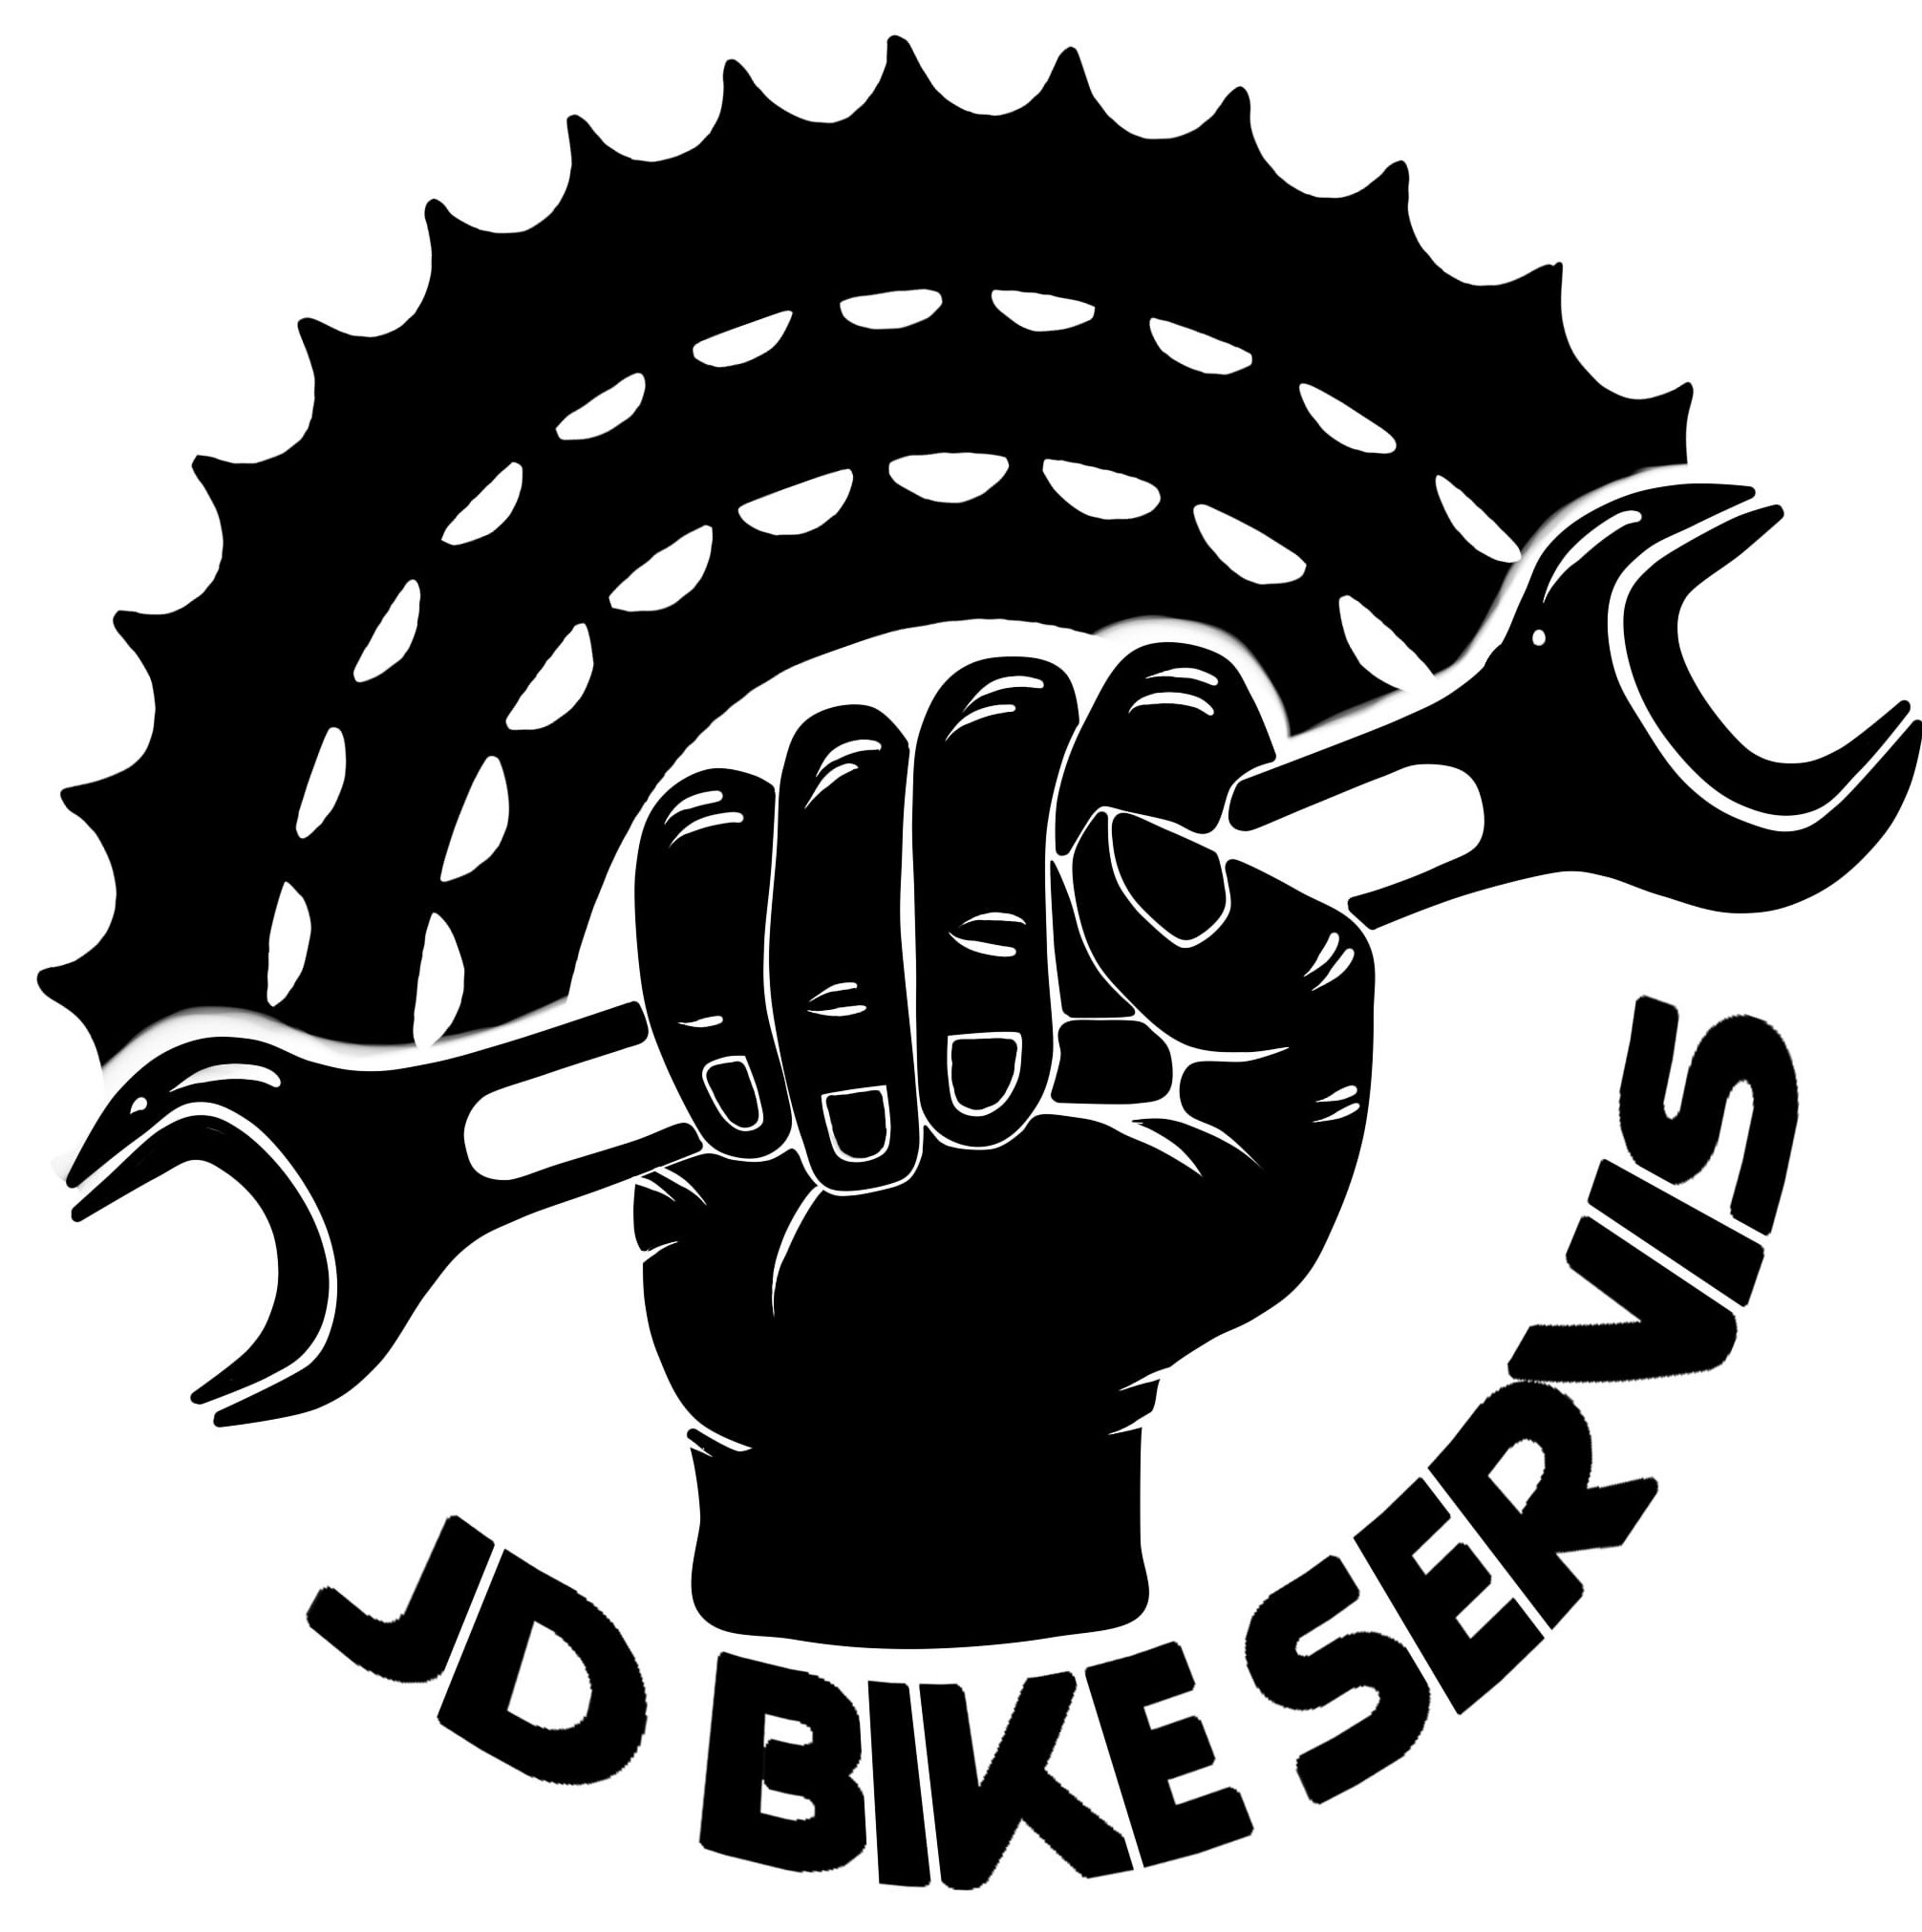 JD Bike servis